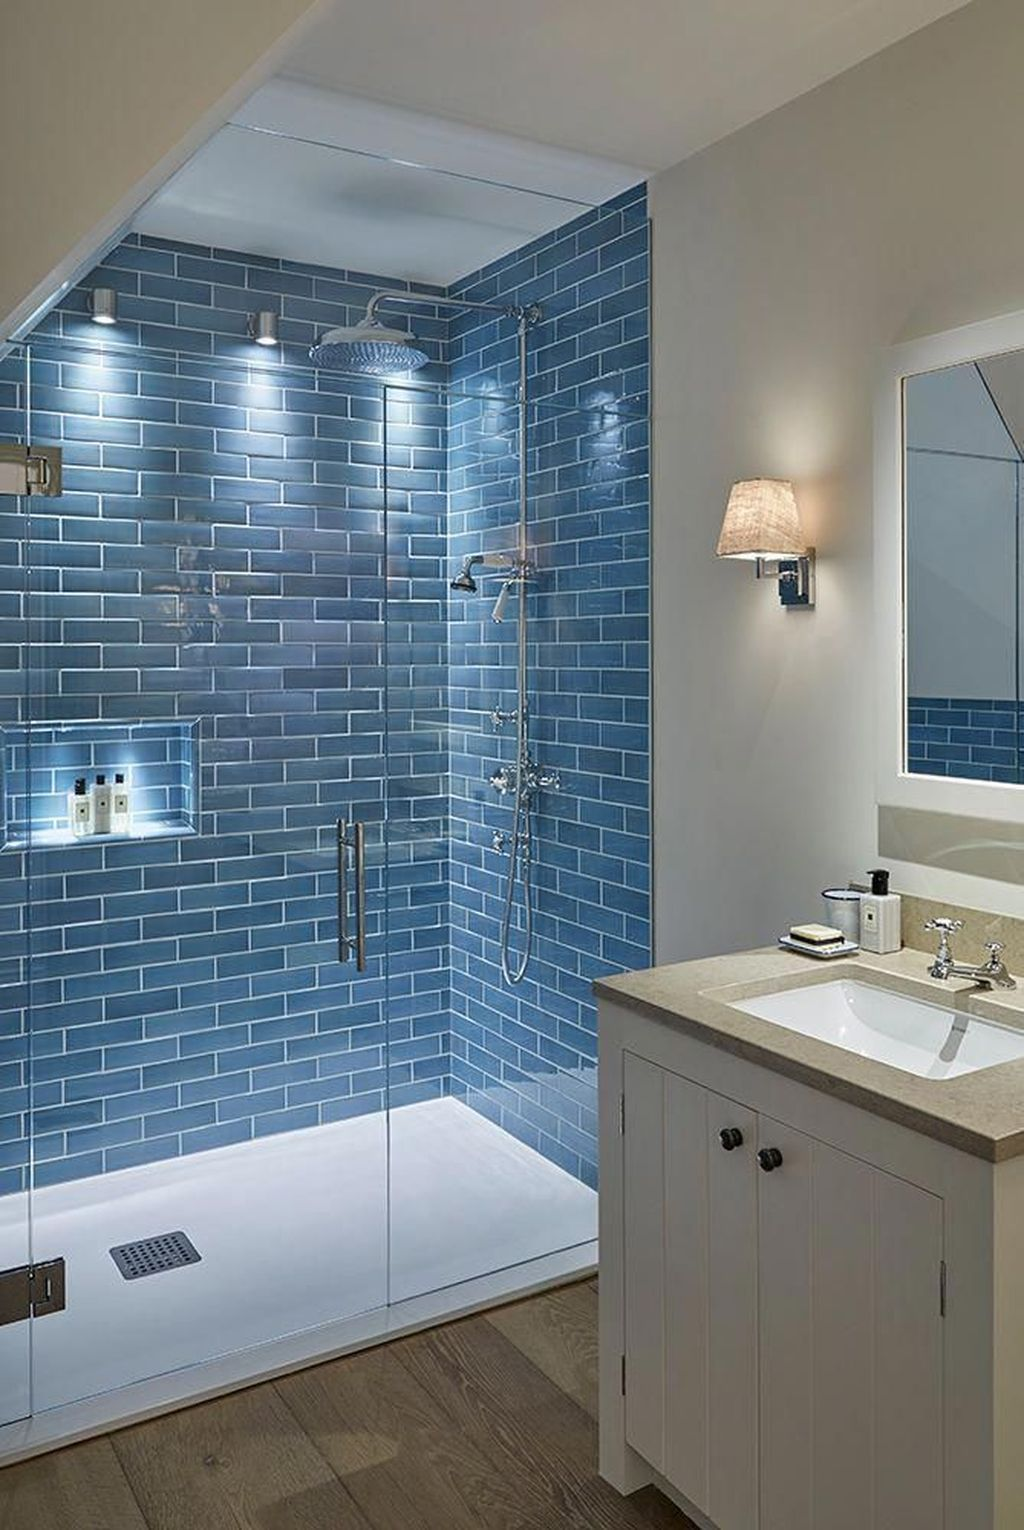 46 Amazing Bathroom Remodel Ideas On A Budget | Master ... on Amazing Small Bathrooms  id=51632